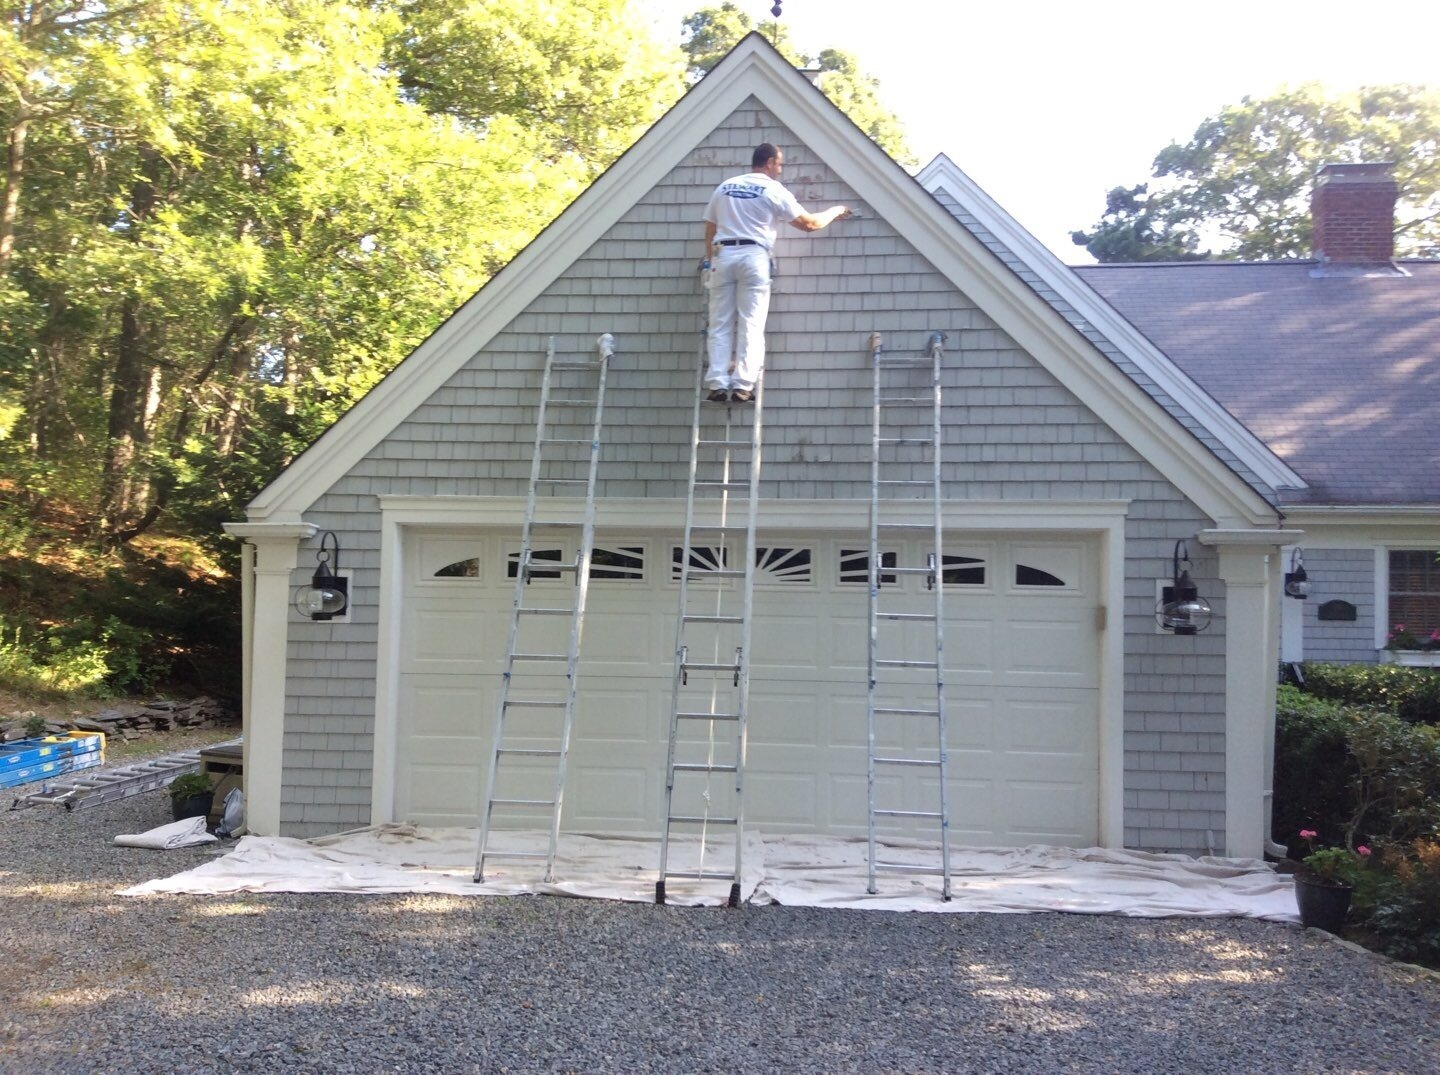 DIY Exterior Painting - Do it Right the First Time